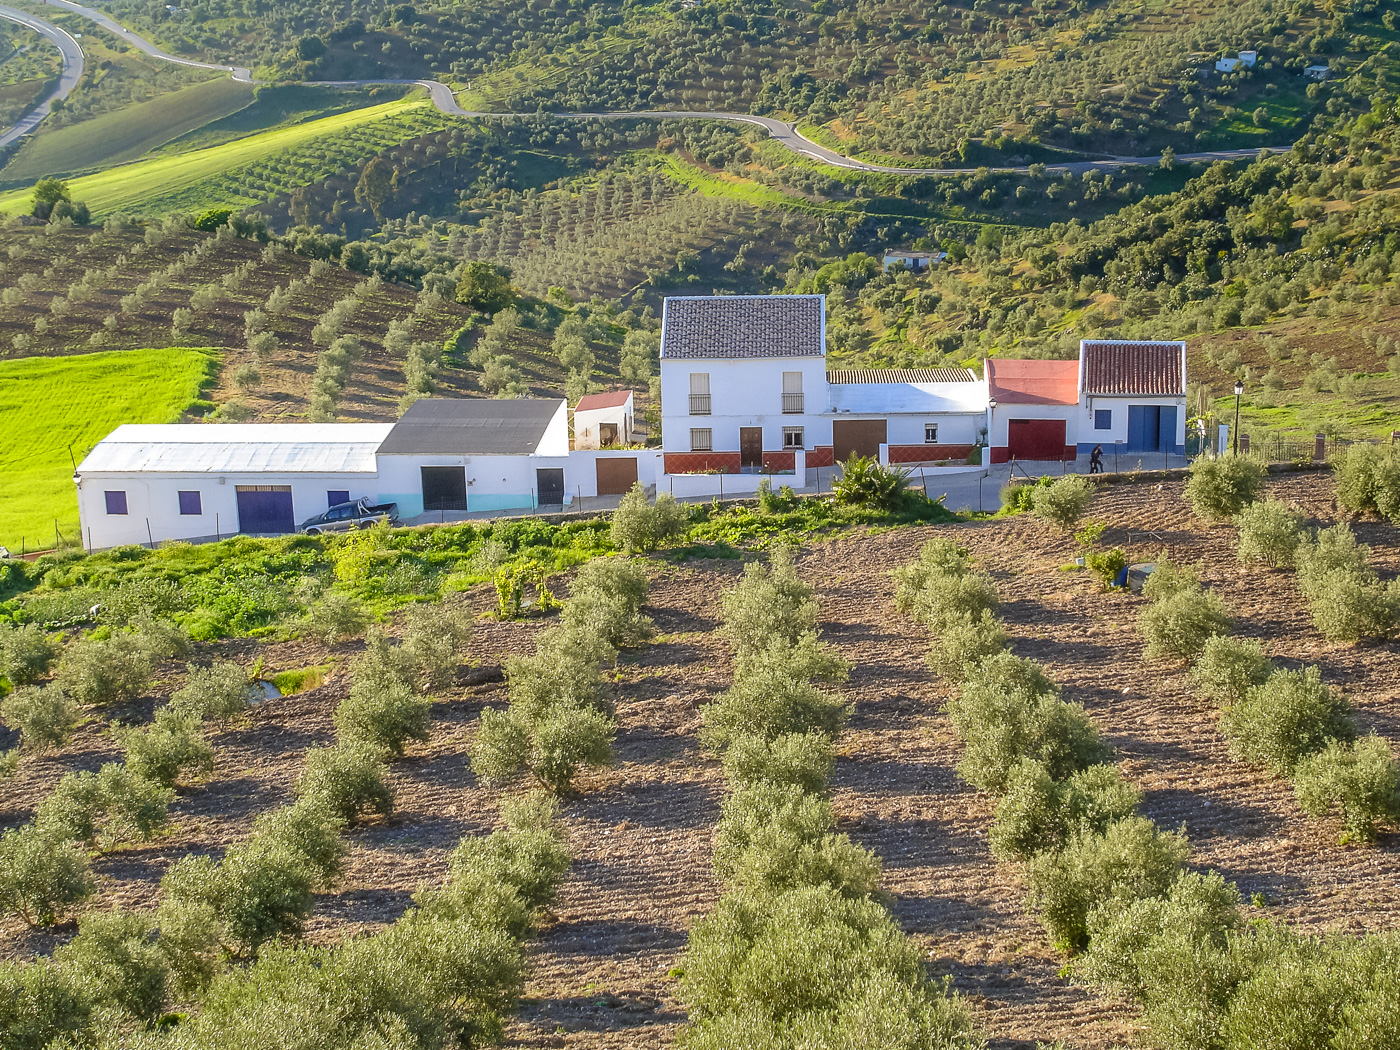 S-cape-Ronda-and-Seville-winding-roads-20